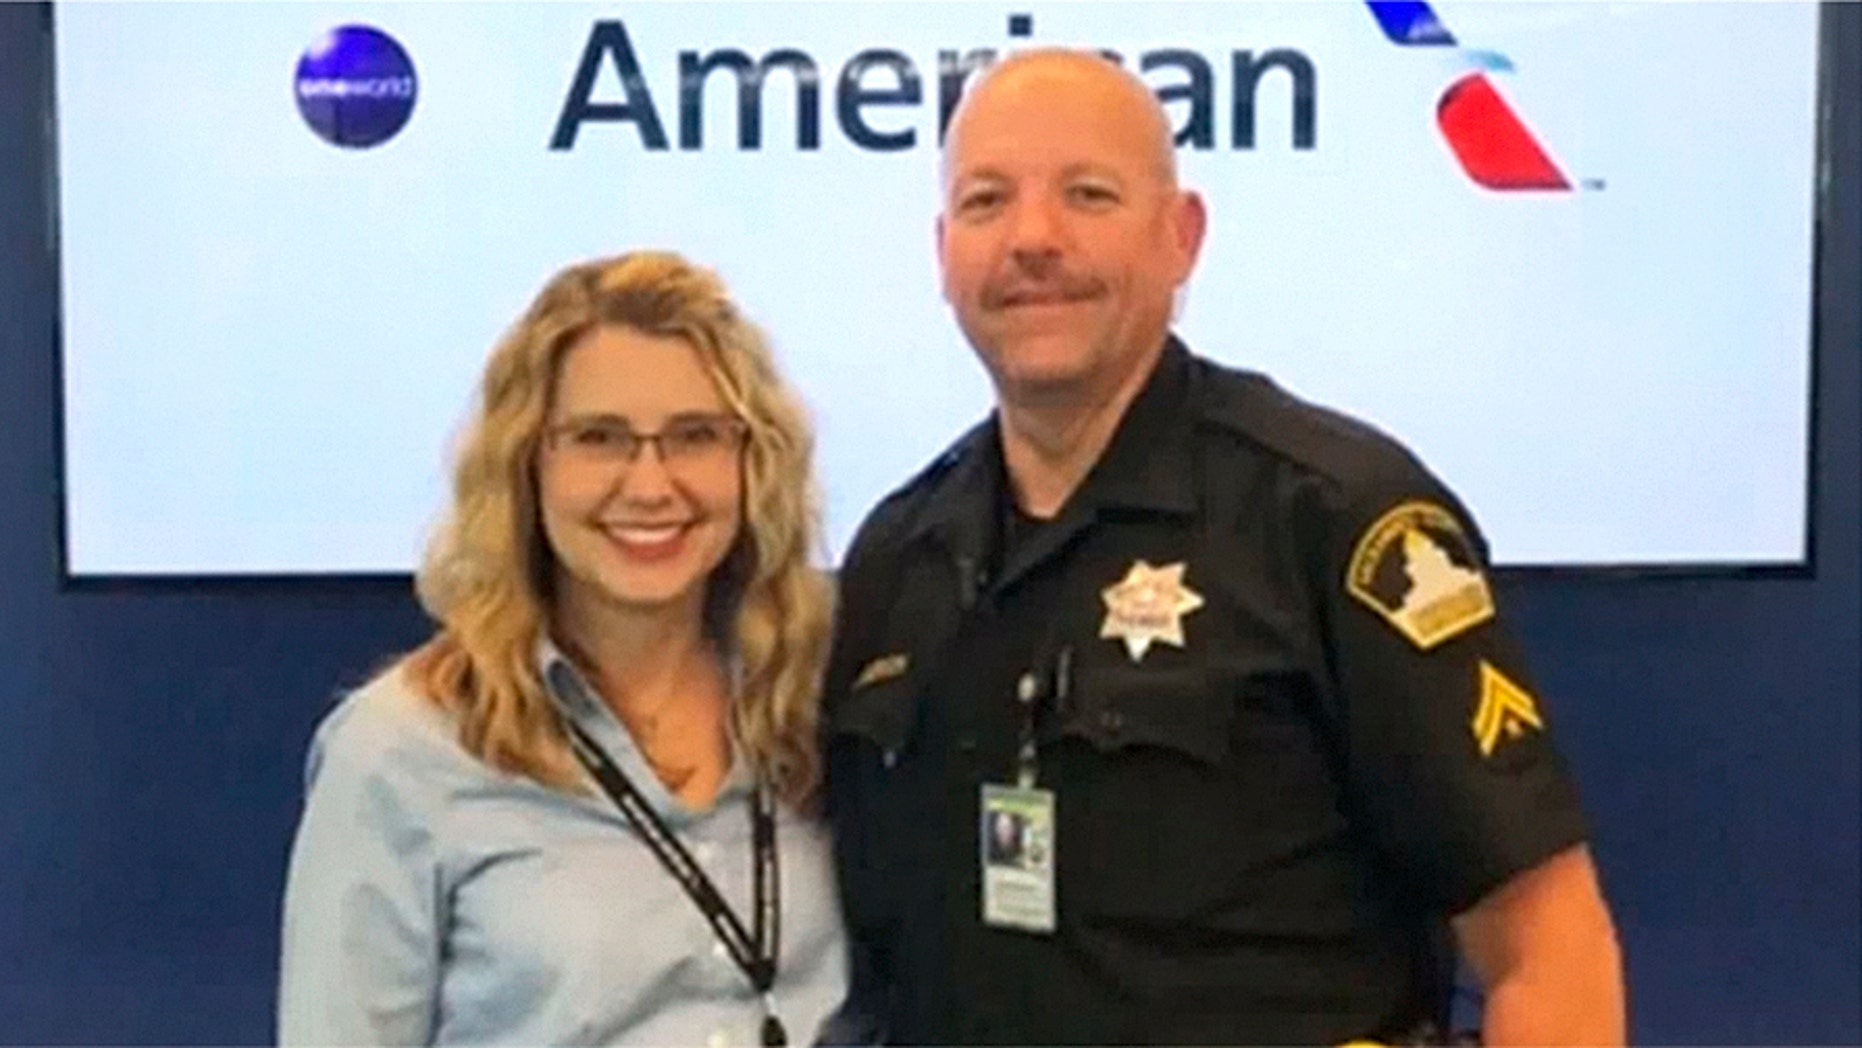 American Airlines Agent Named Miracle Saves Teens From